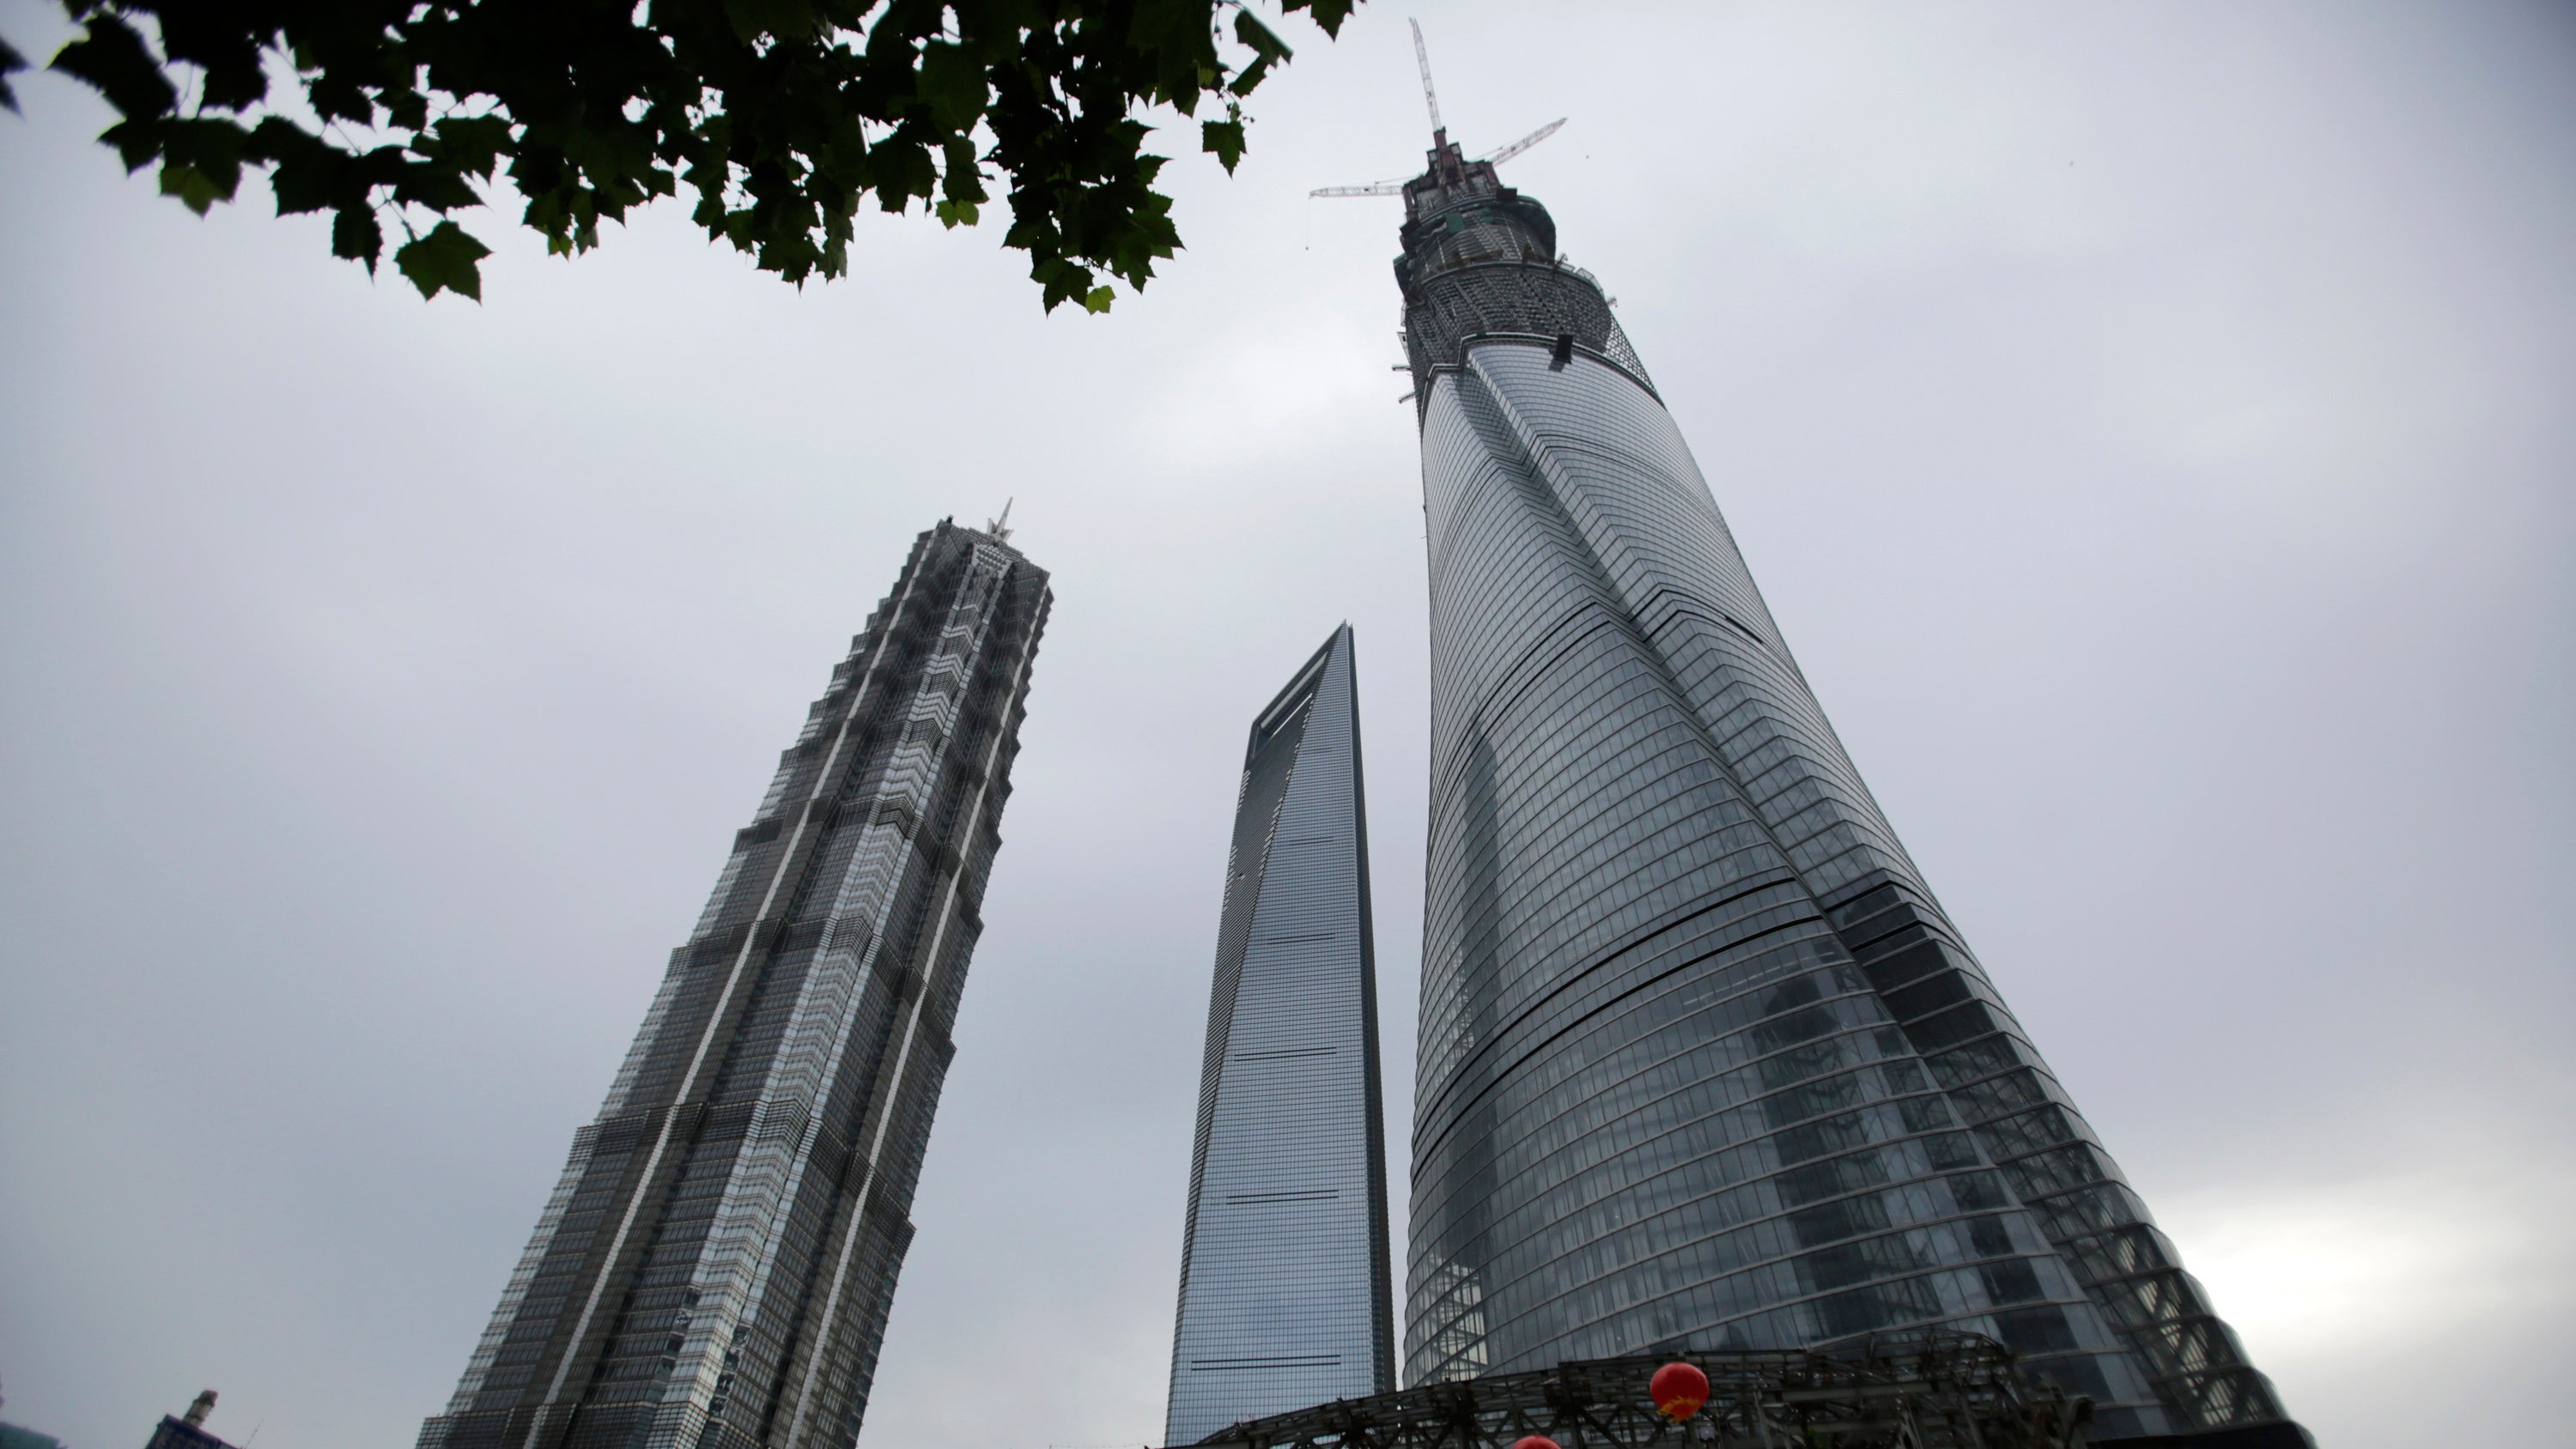 How A 121-Storey Building Uses A Giant Magnet To Prevent Swaying